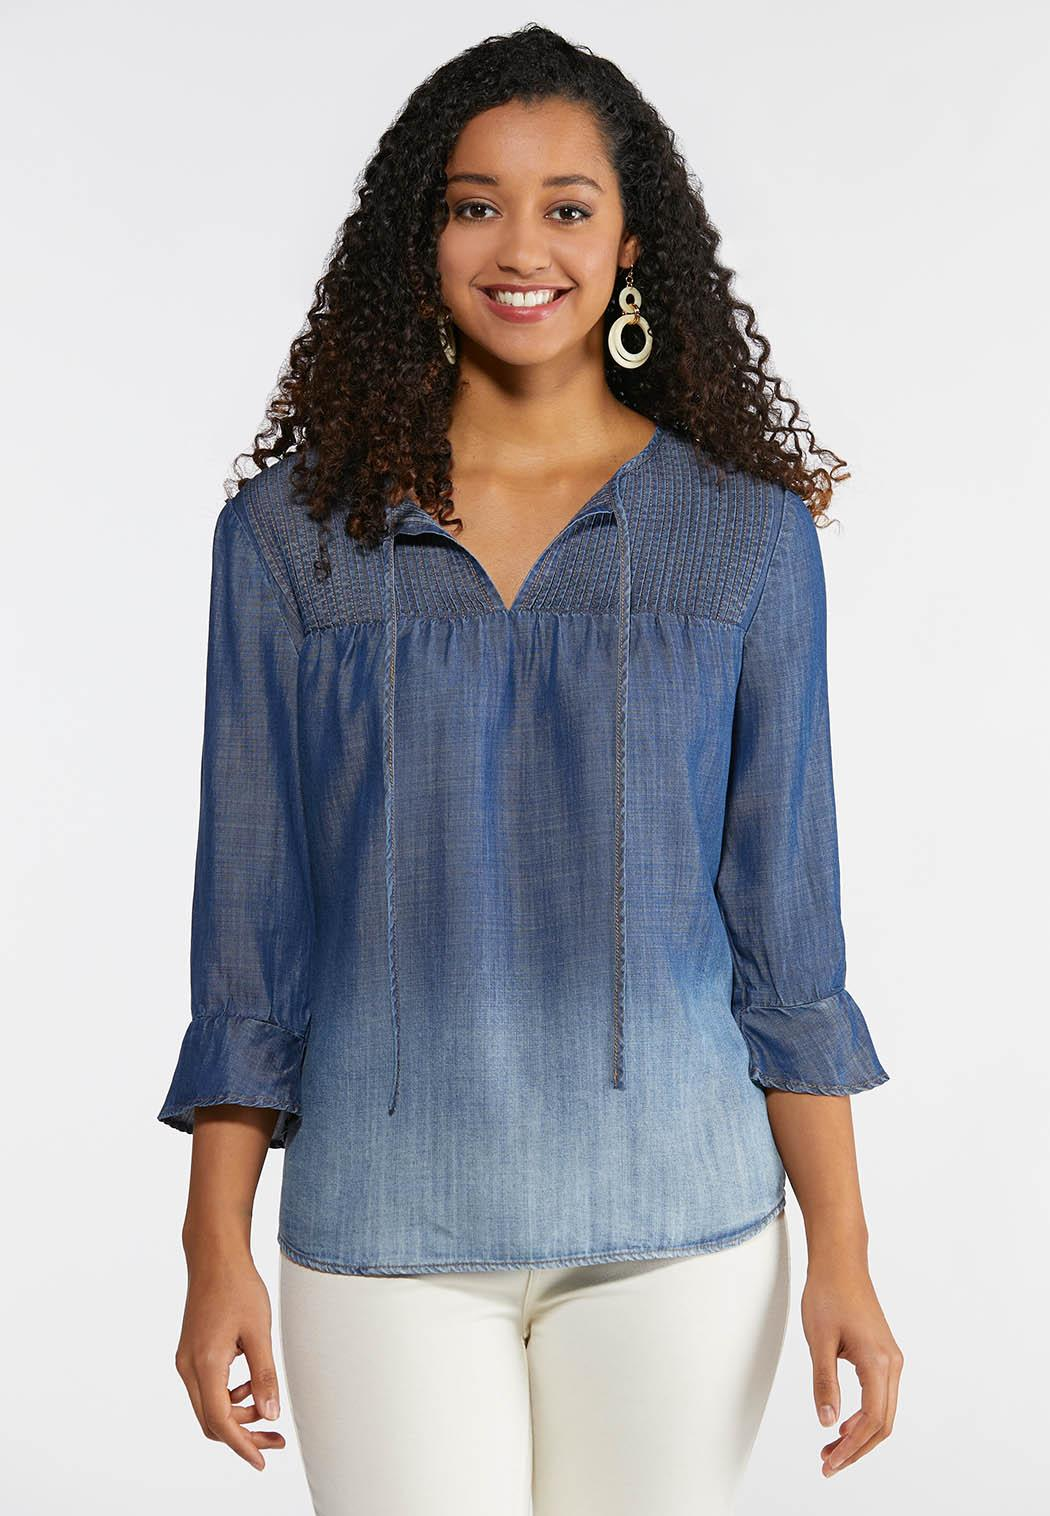 Plus Size Pintucked Denim Top Shirts Cato Fashions